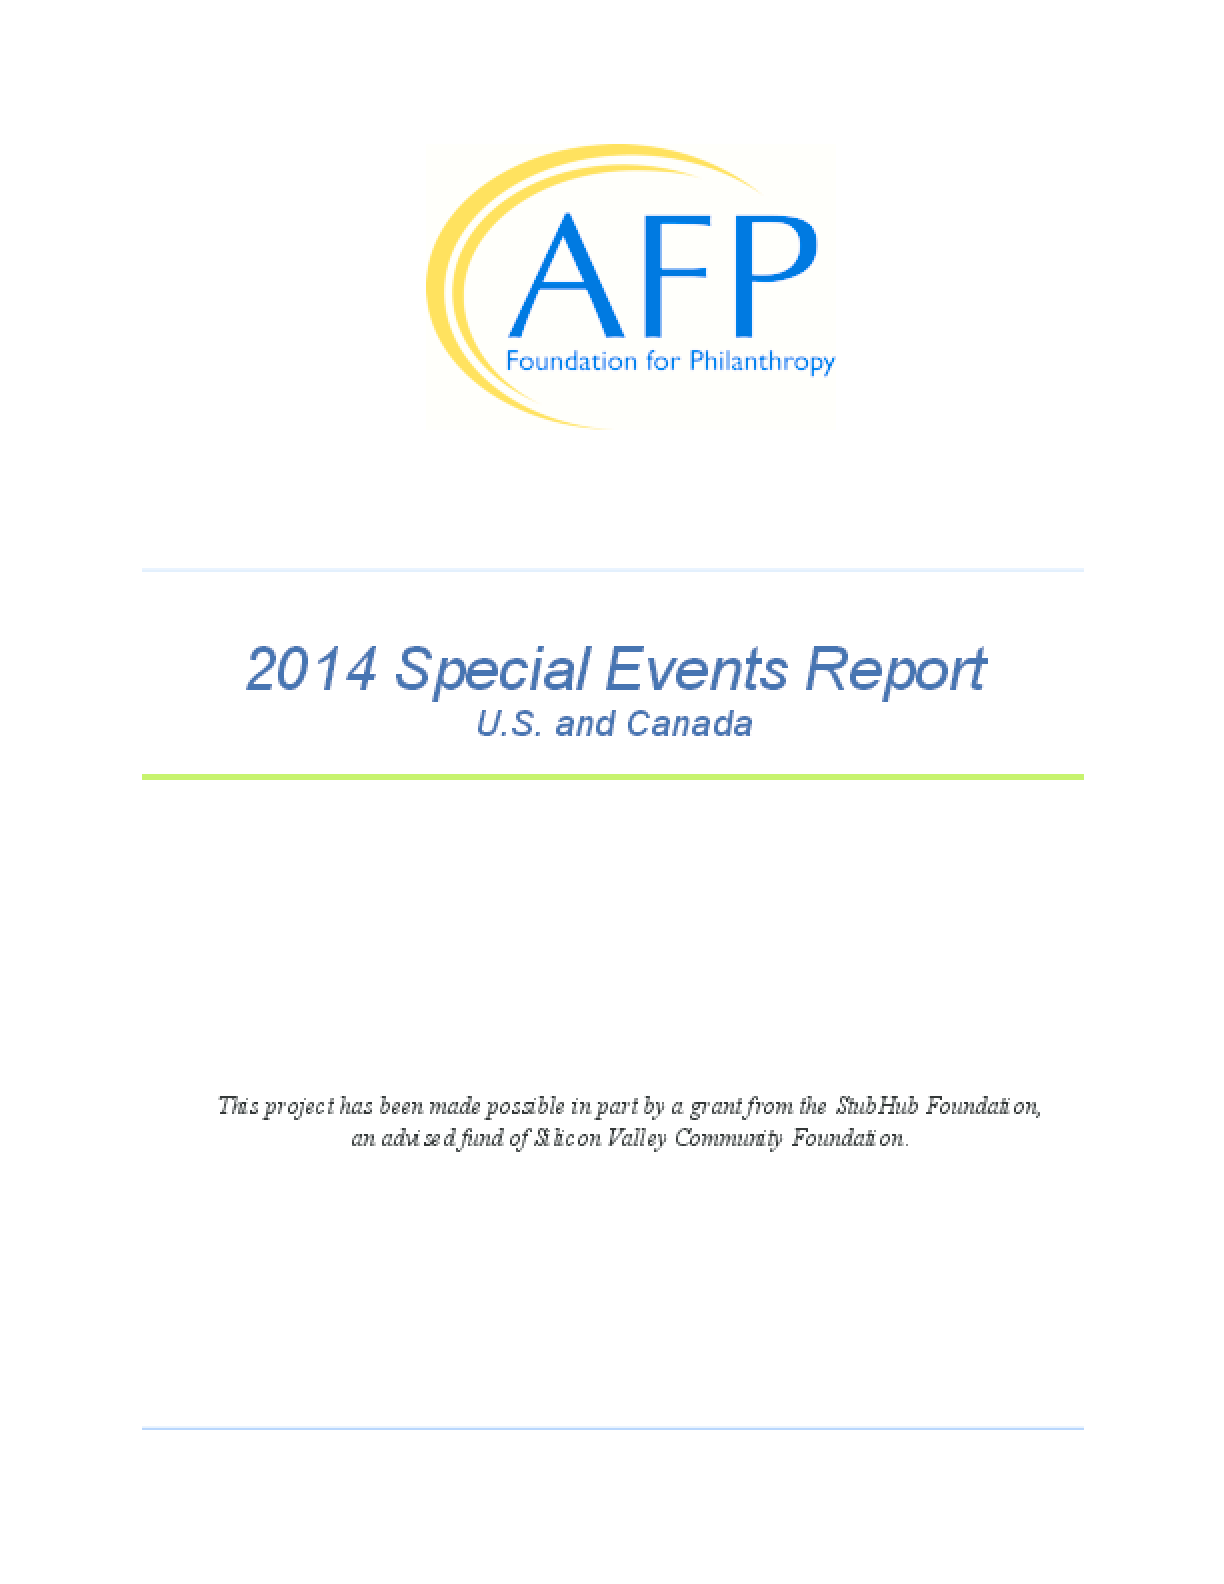 2014 Special Events Report: U.S. and Canada